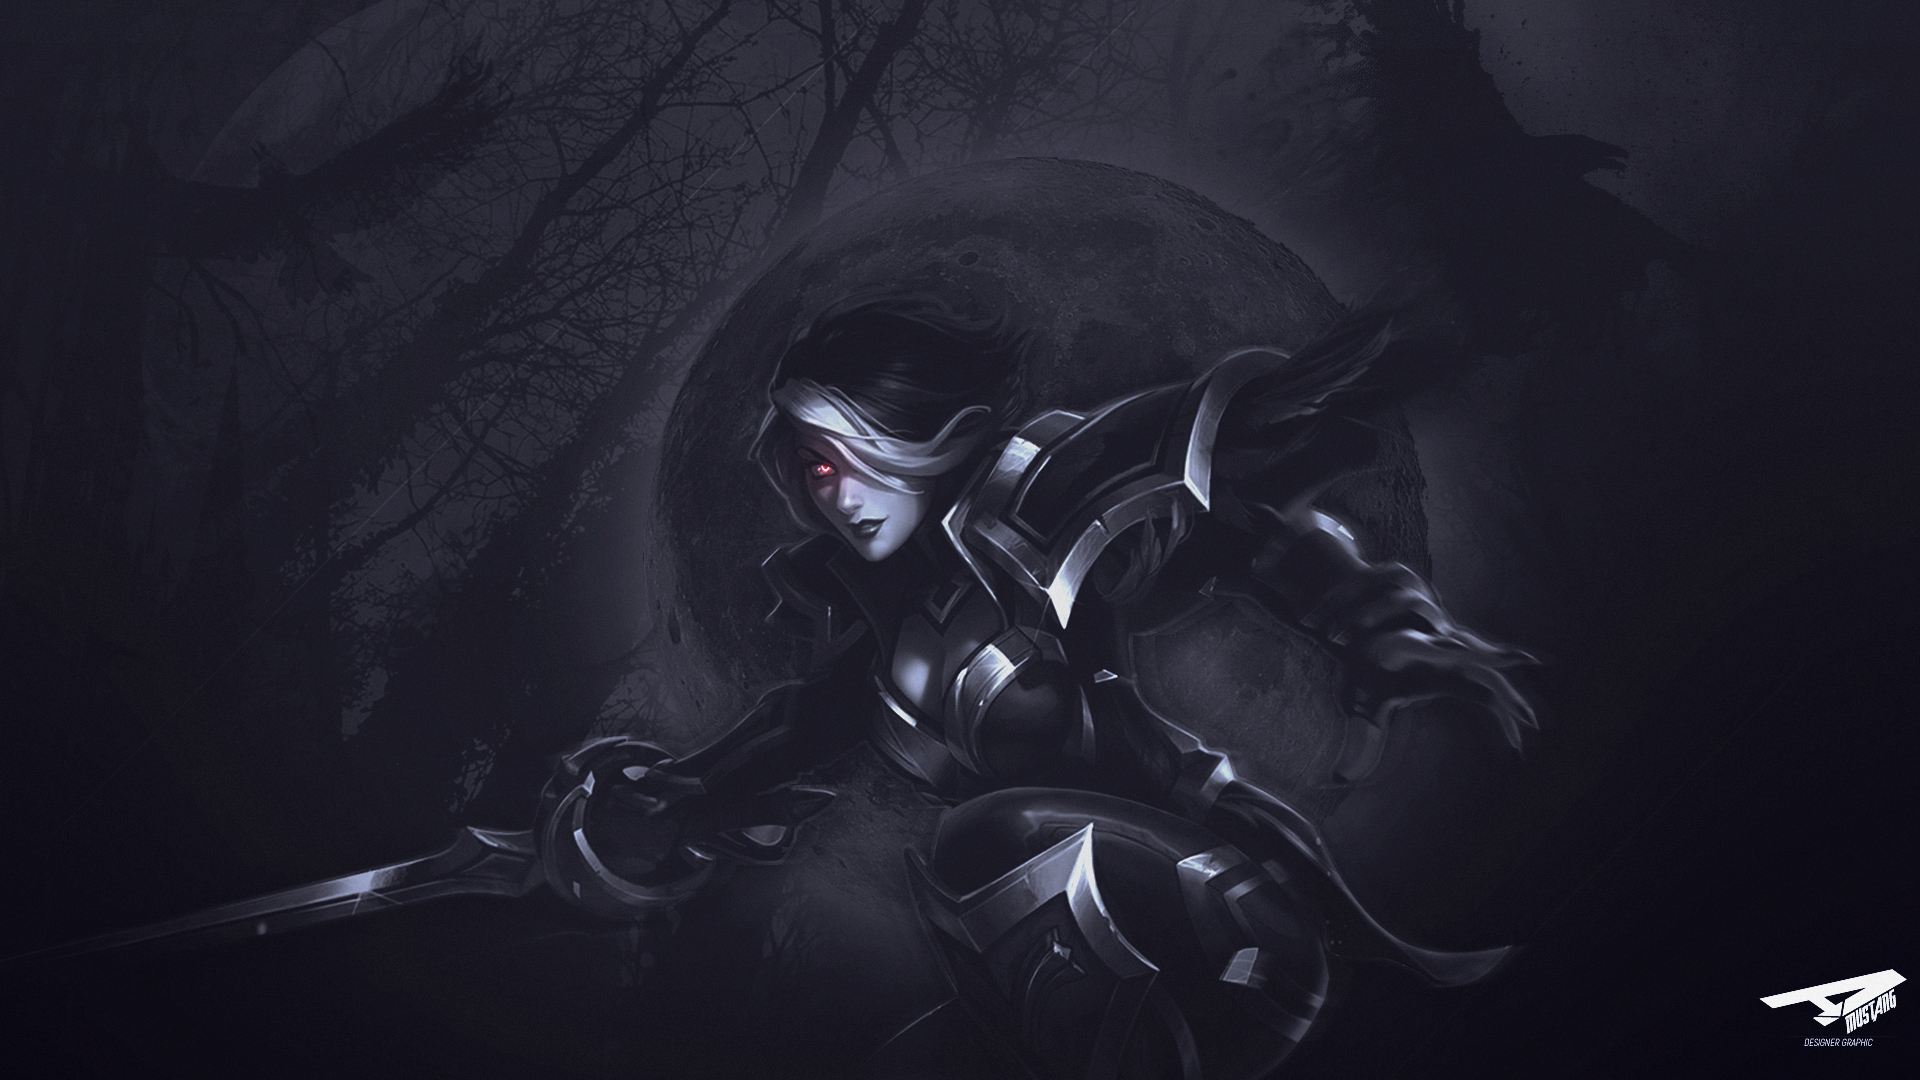 Fiora | Night Raven by AlexMust4ng